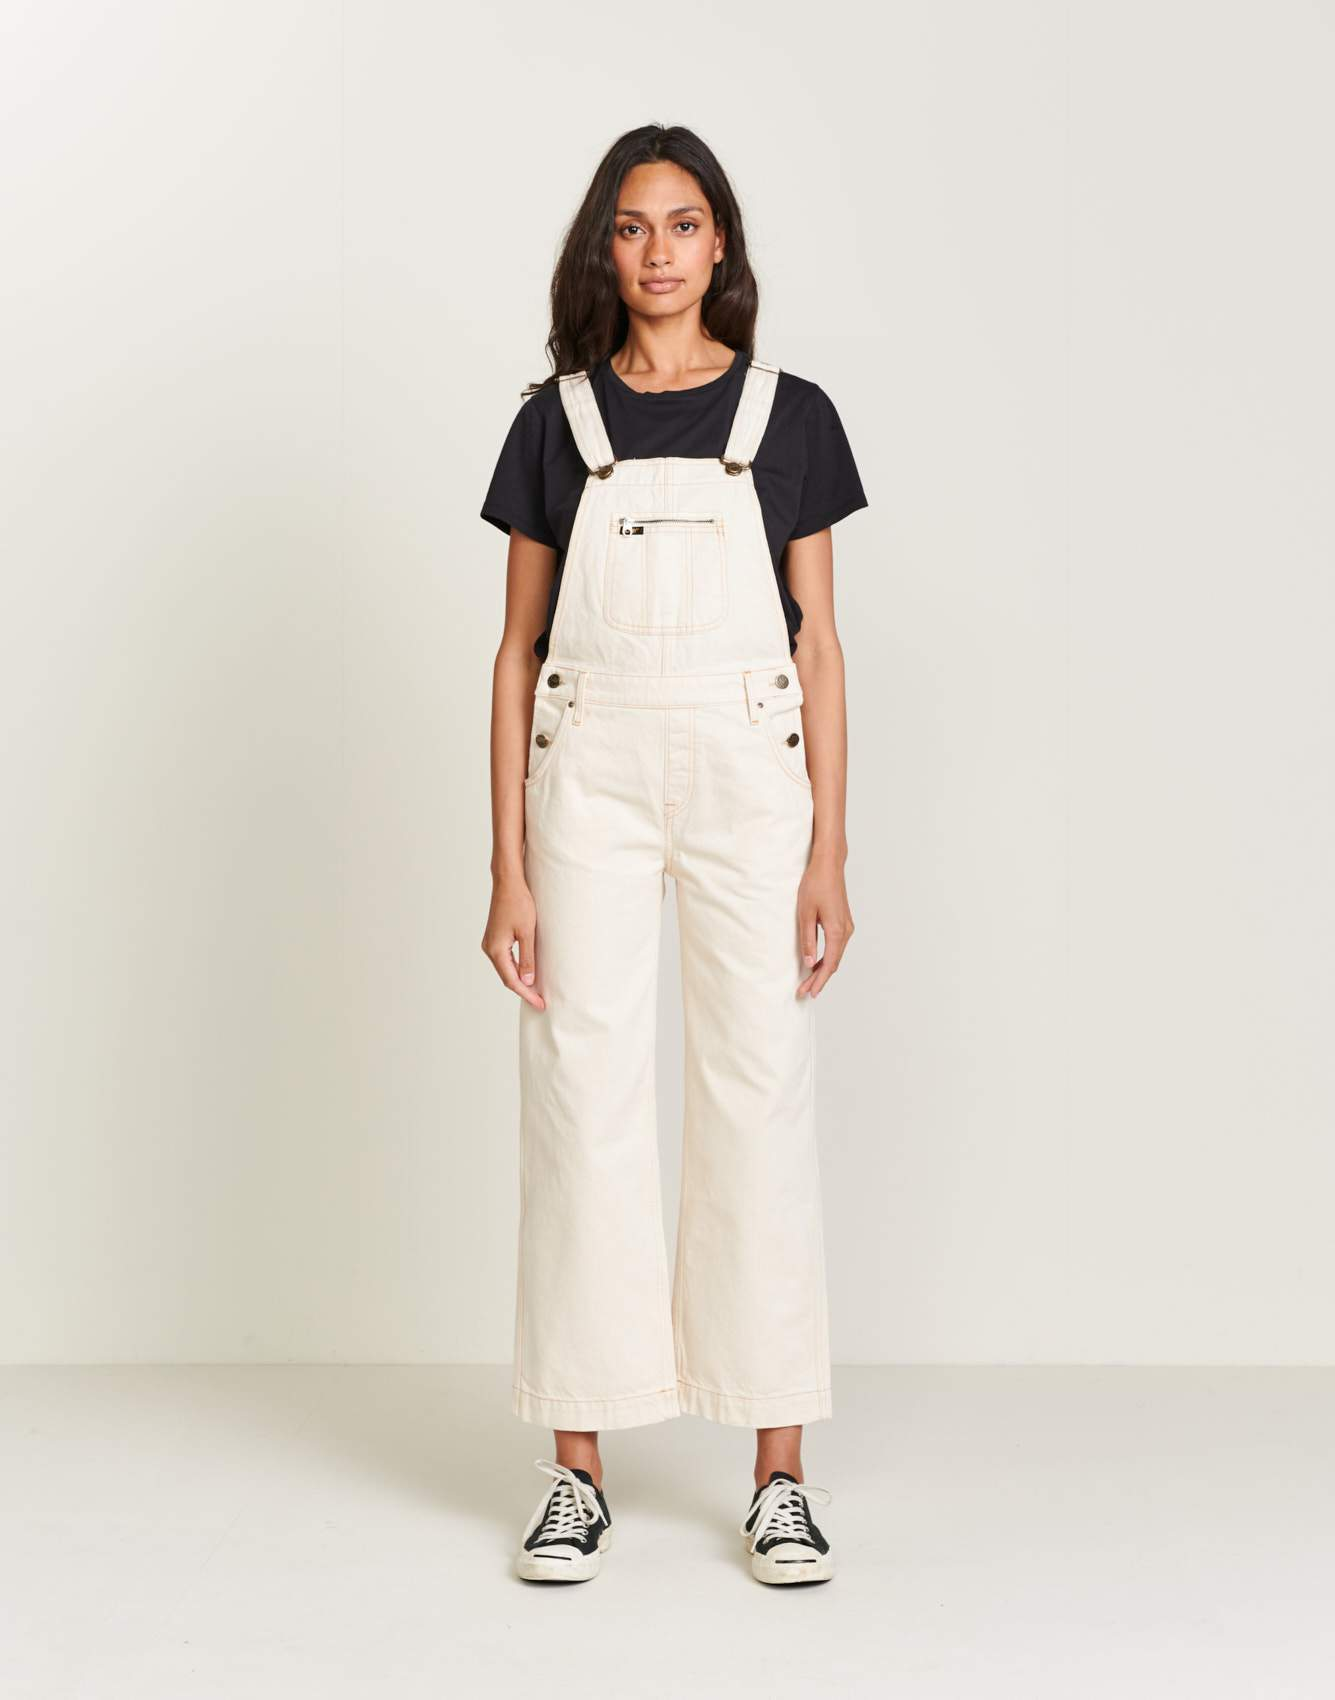 da8e0e9b678 Women Spring-Summer'19 collection | Bellerose